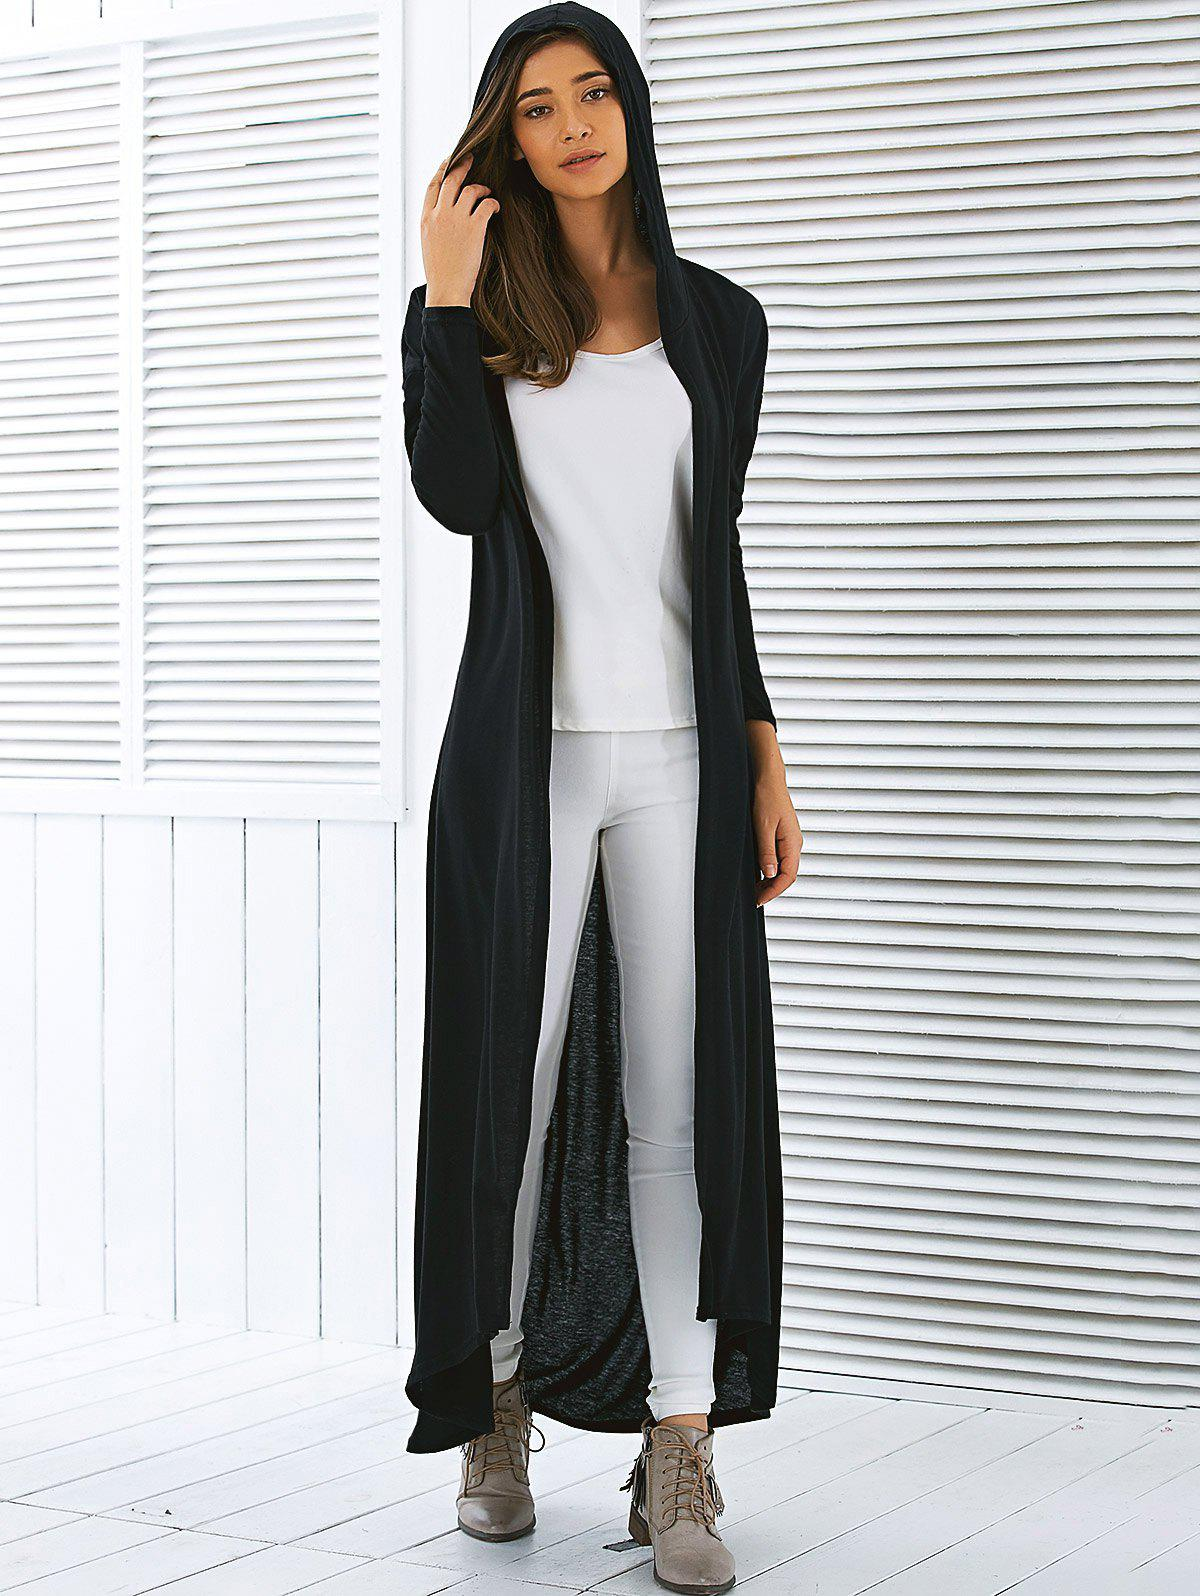 Black dress with long cardigan